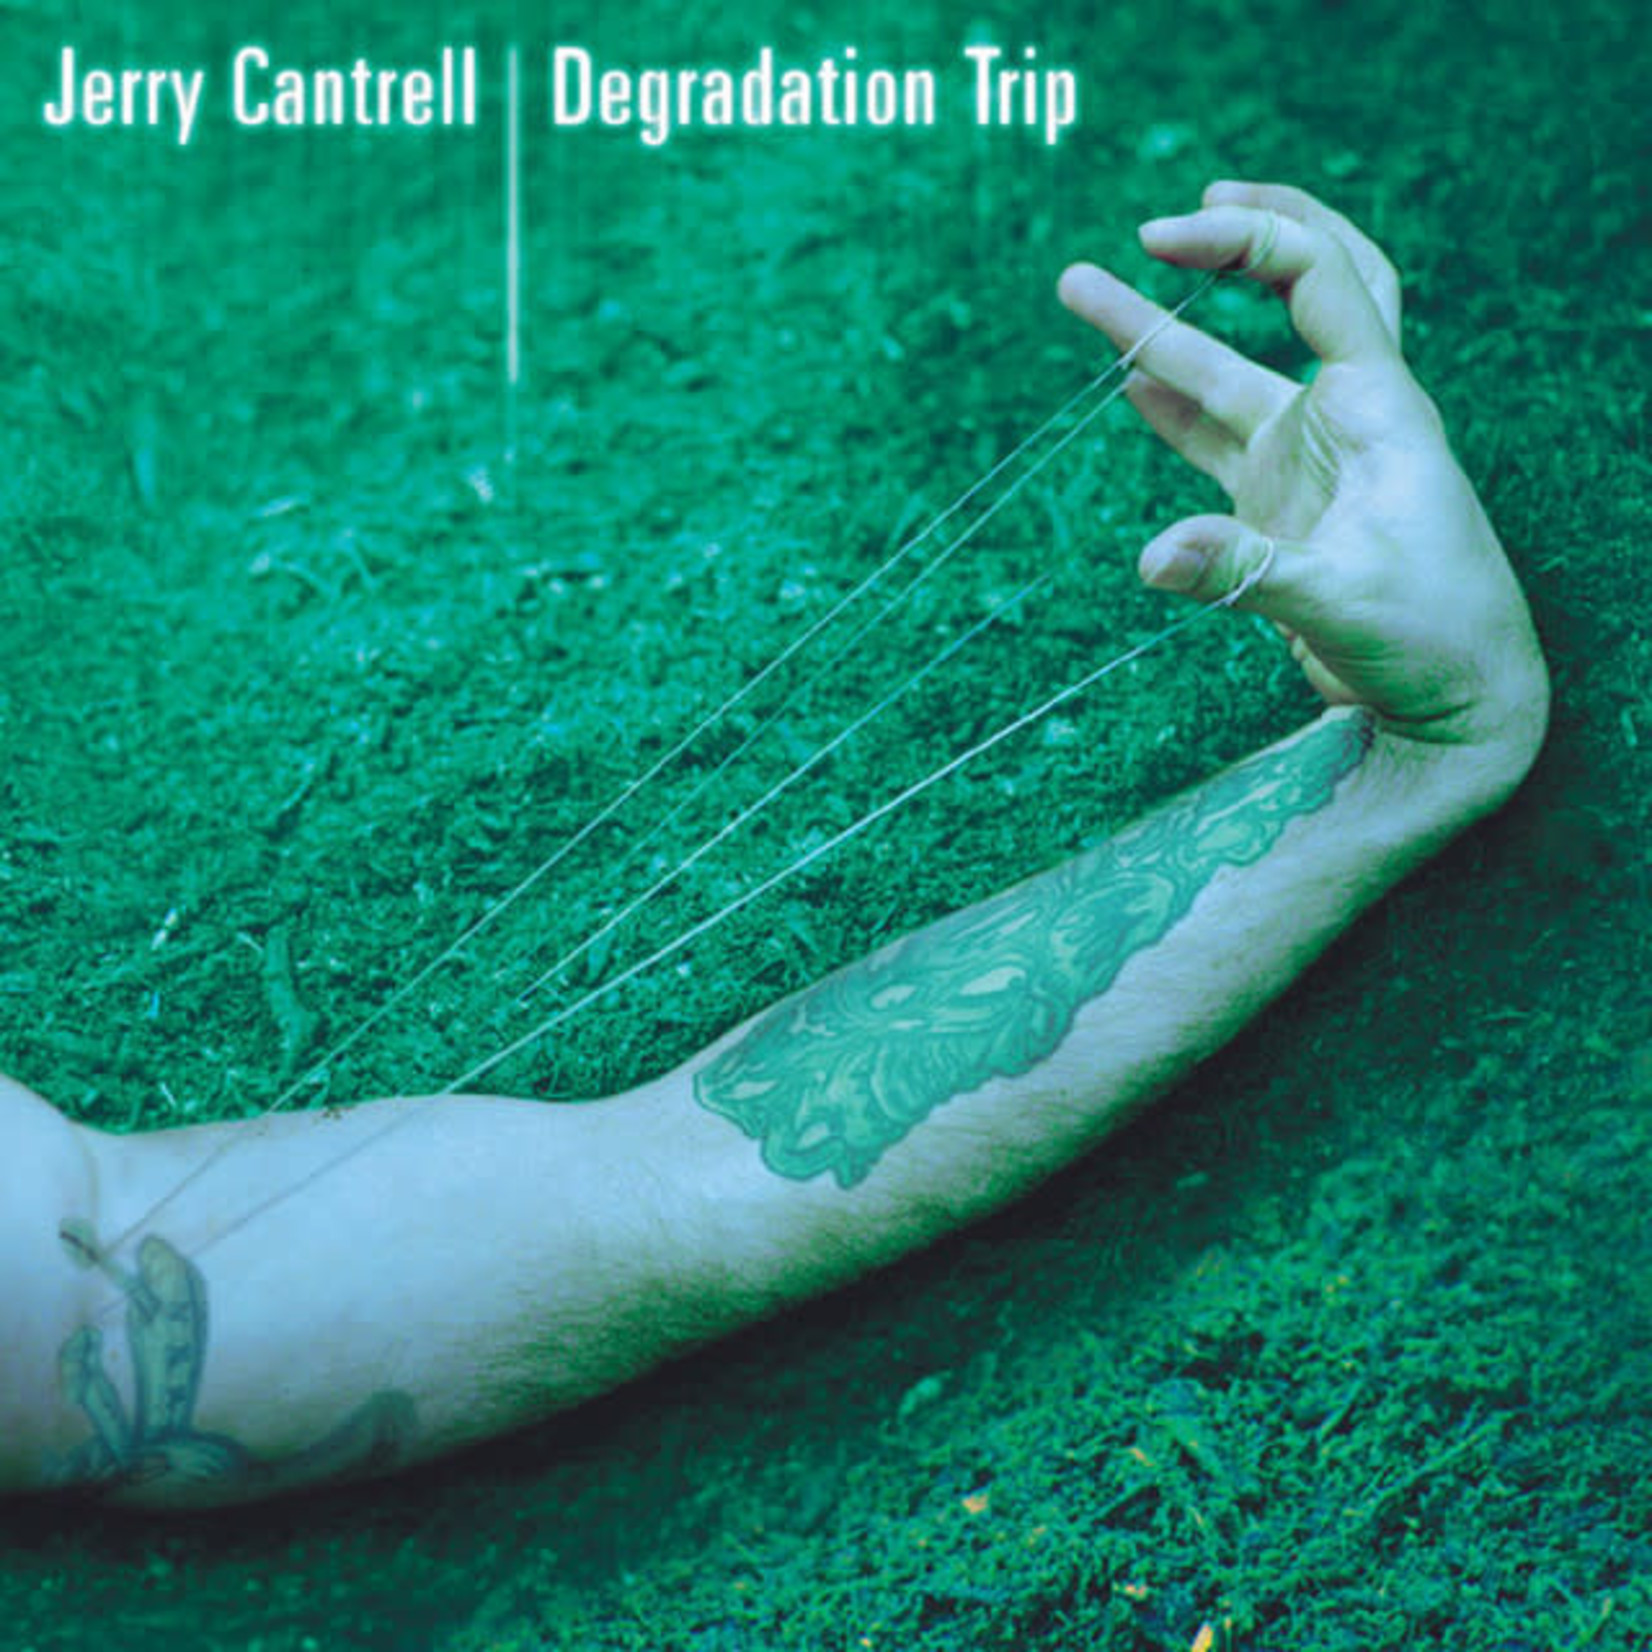 Vinyl Jerry Cantrell - Degradation Trip